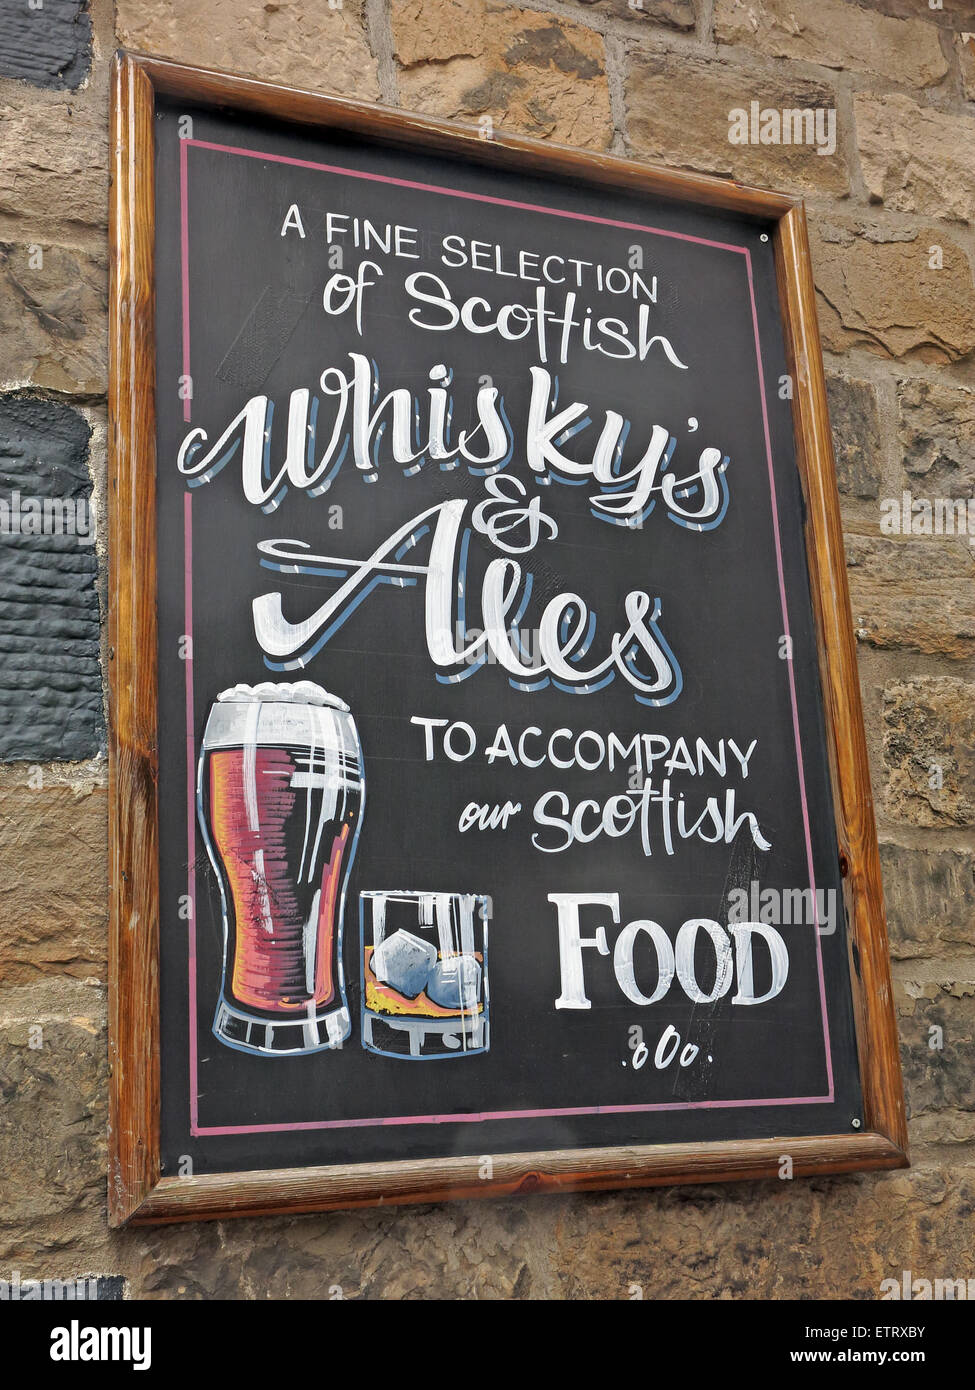 Sign, A fine selection of Scottish Whiskys & ales to accompany our Scottish food - Stock Image